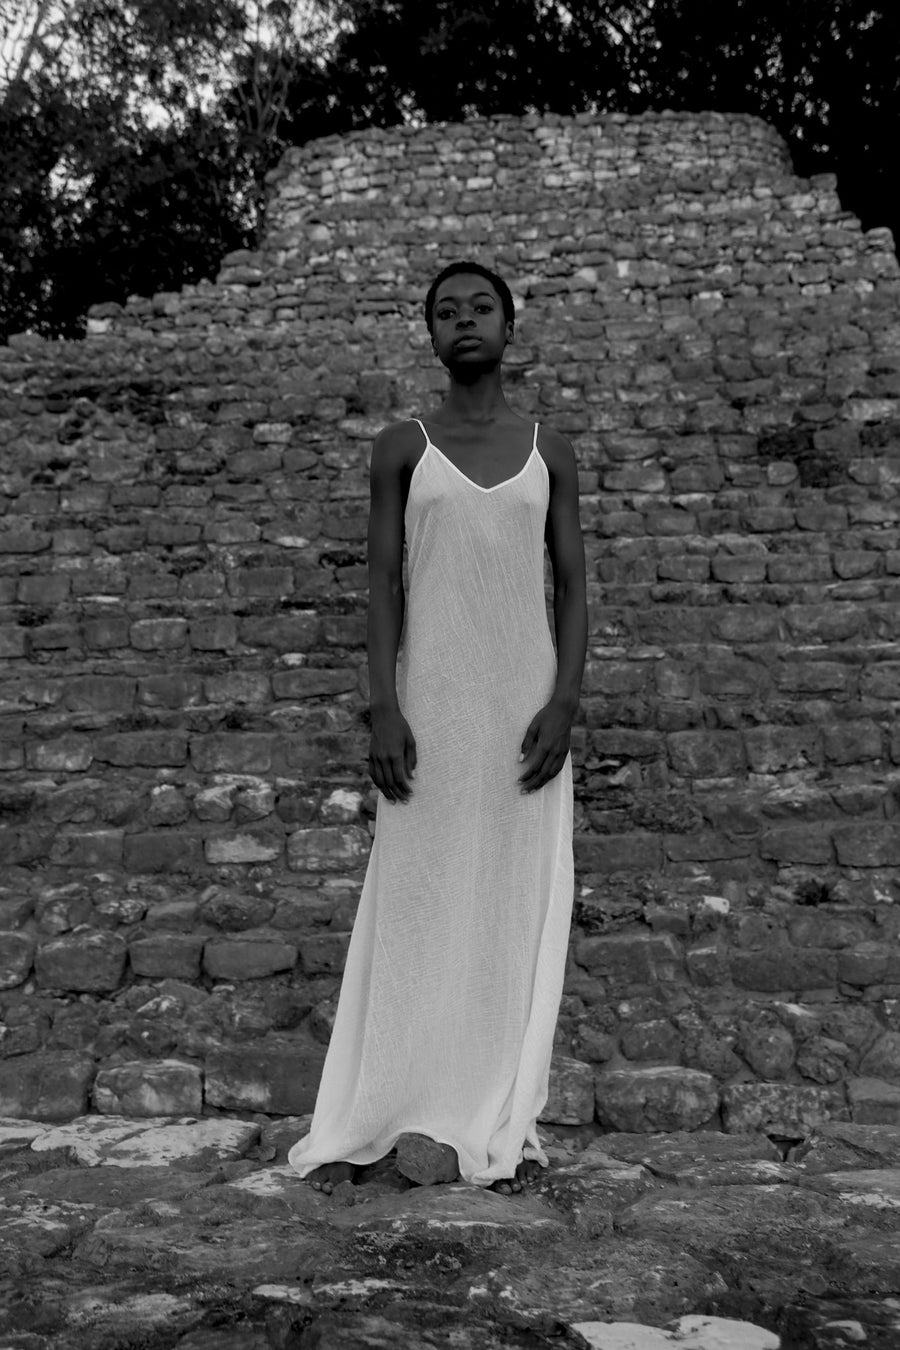 This is a black and white photo of a womand in a white slip dress syanding in front of a monument made of stones.